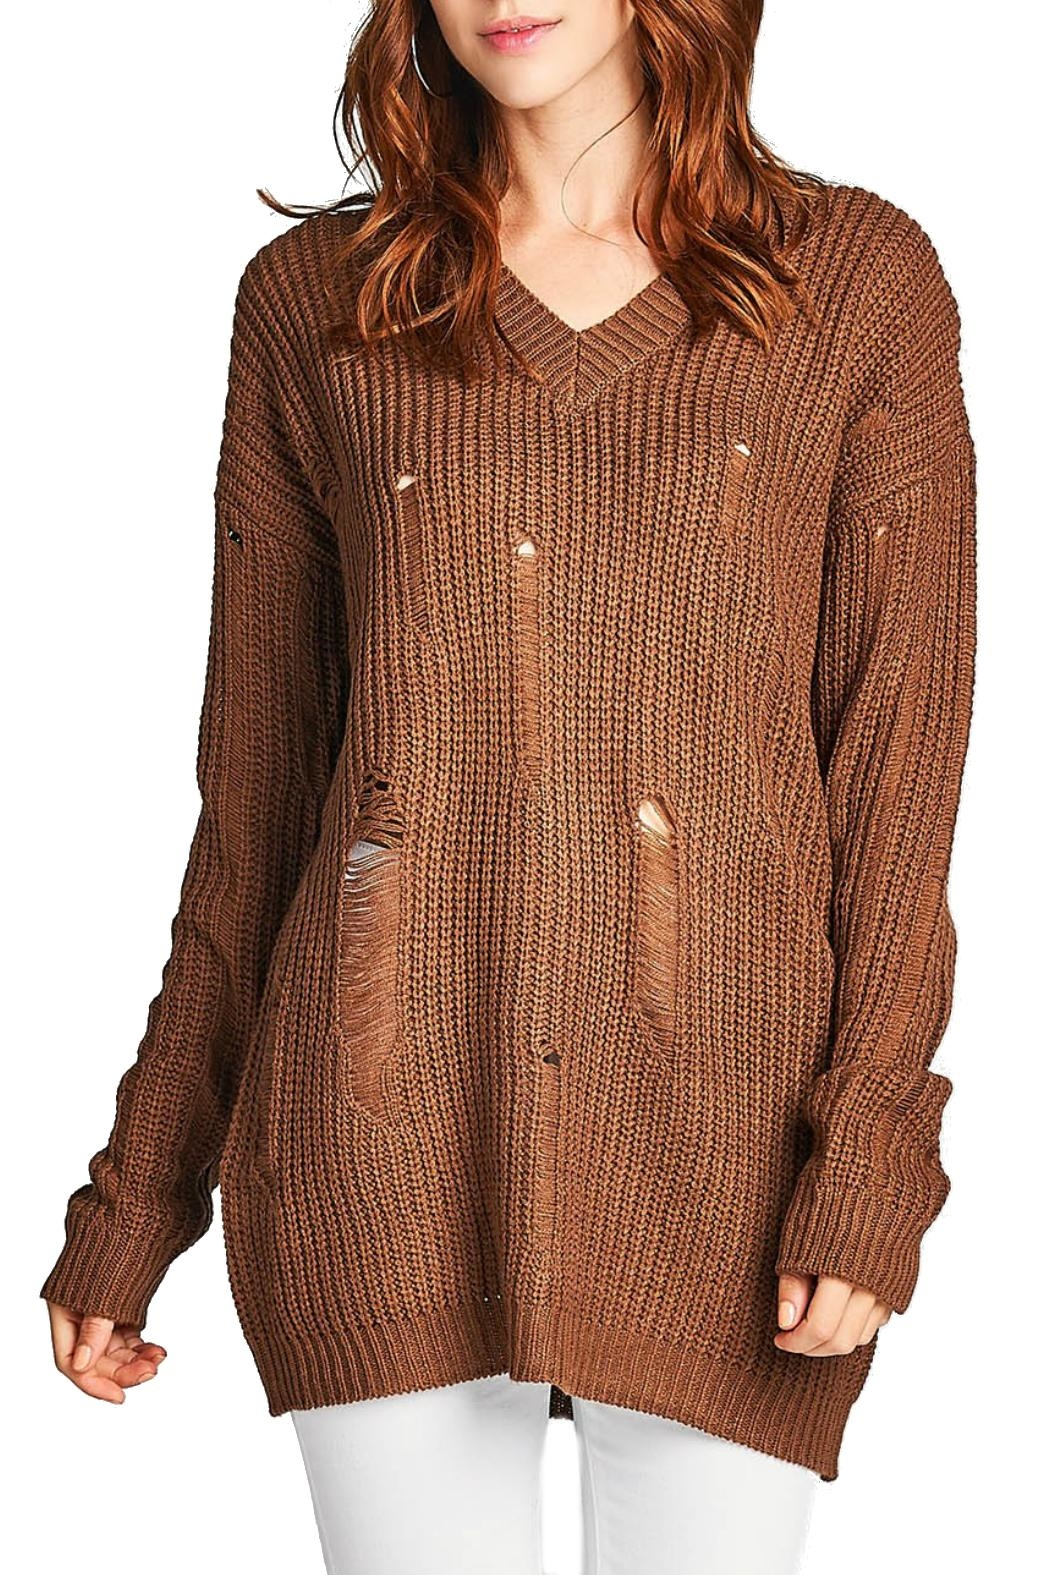 Minx Chocolate Knit Sweater from California by MINX — Shoptiques